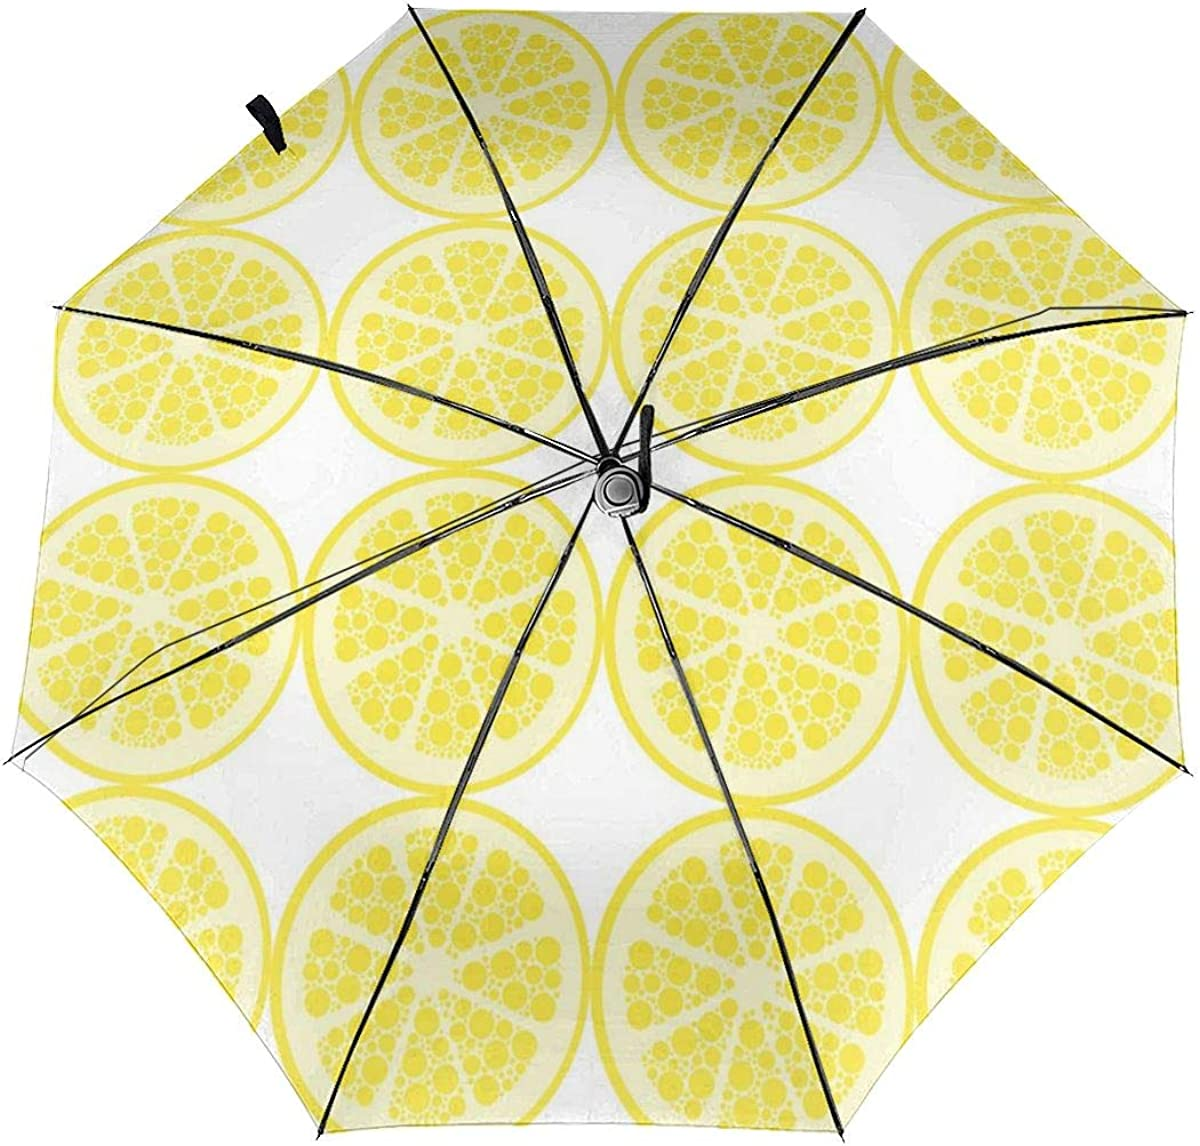 Seamless Lemon Pattern Yellow Image Compact Travel Umbrella Windproof Reinforced Canopy 8 Ribs Umbrella Auto Open And Close Button Personalized